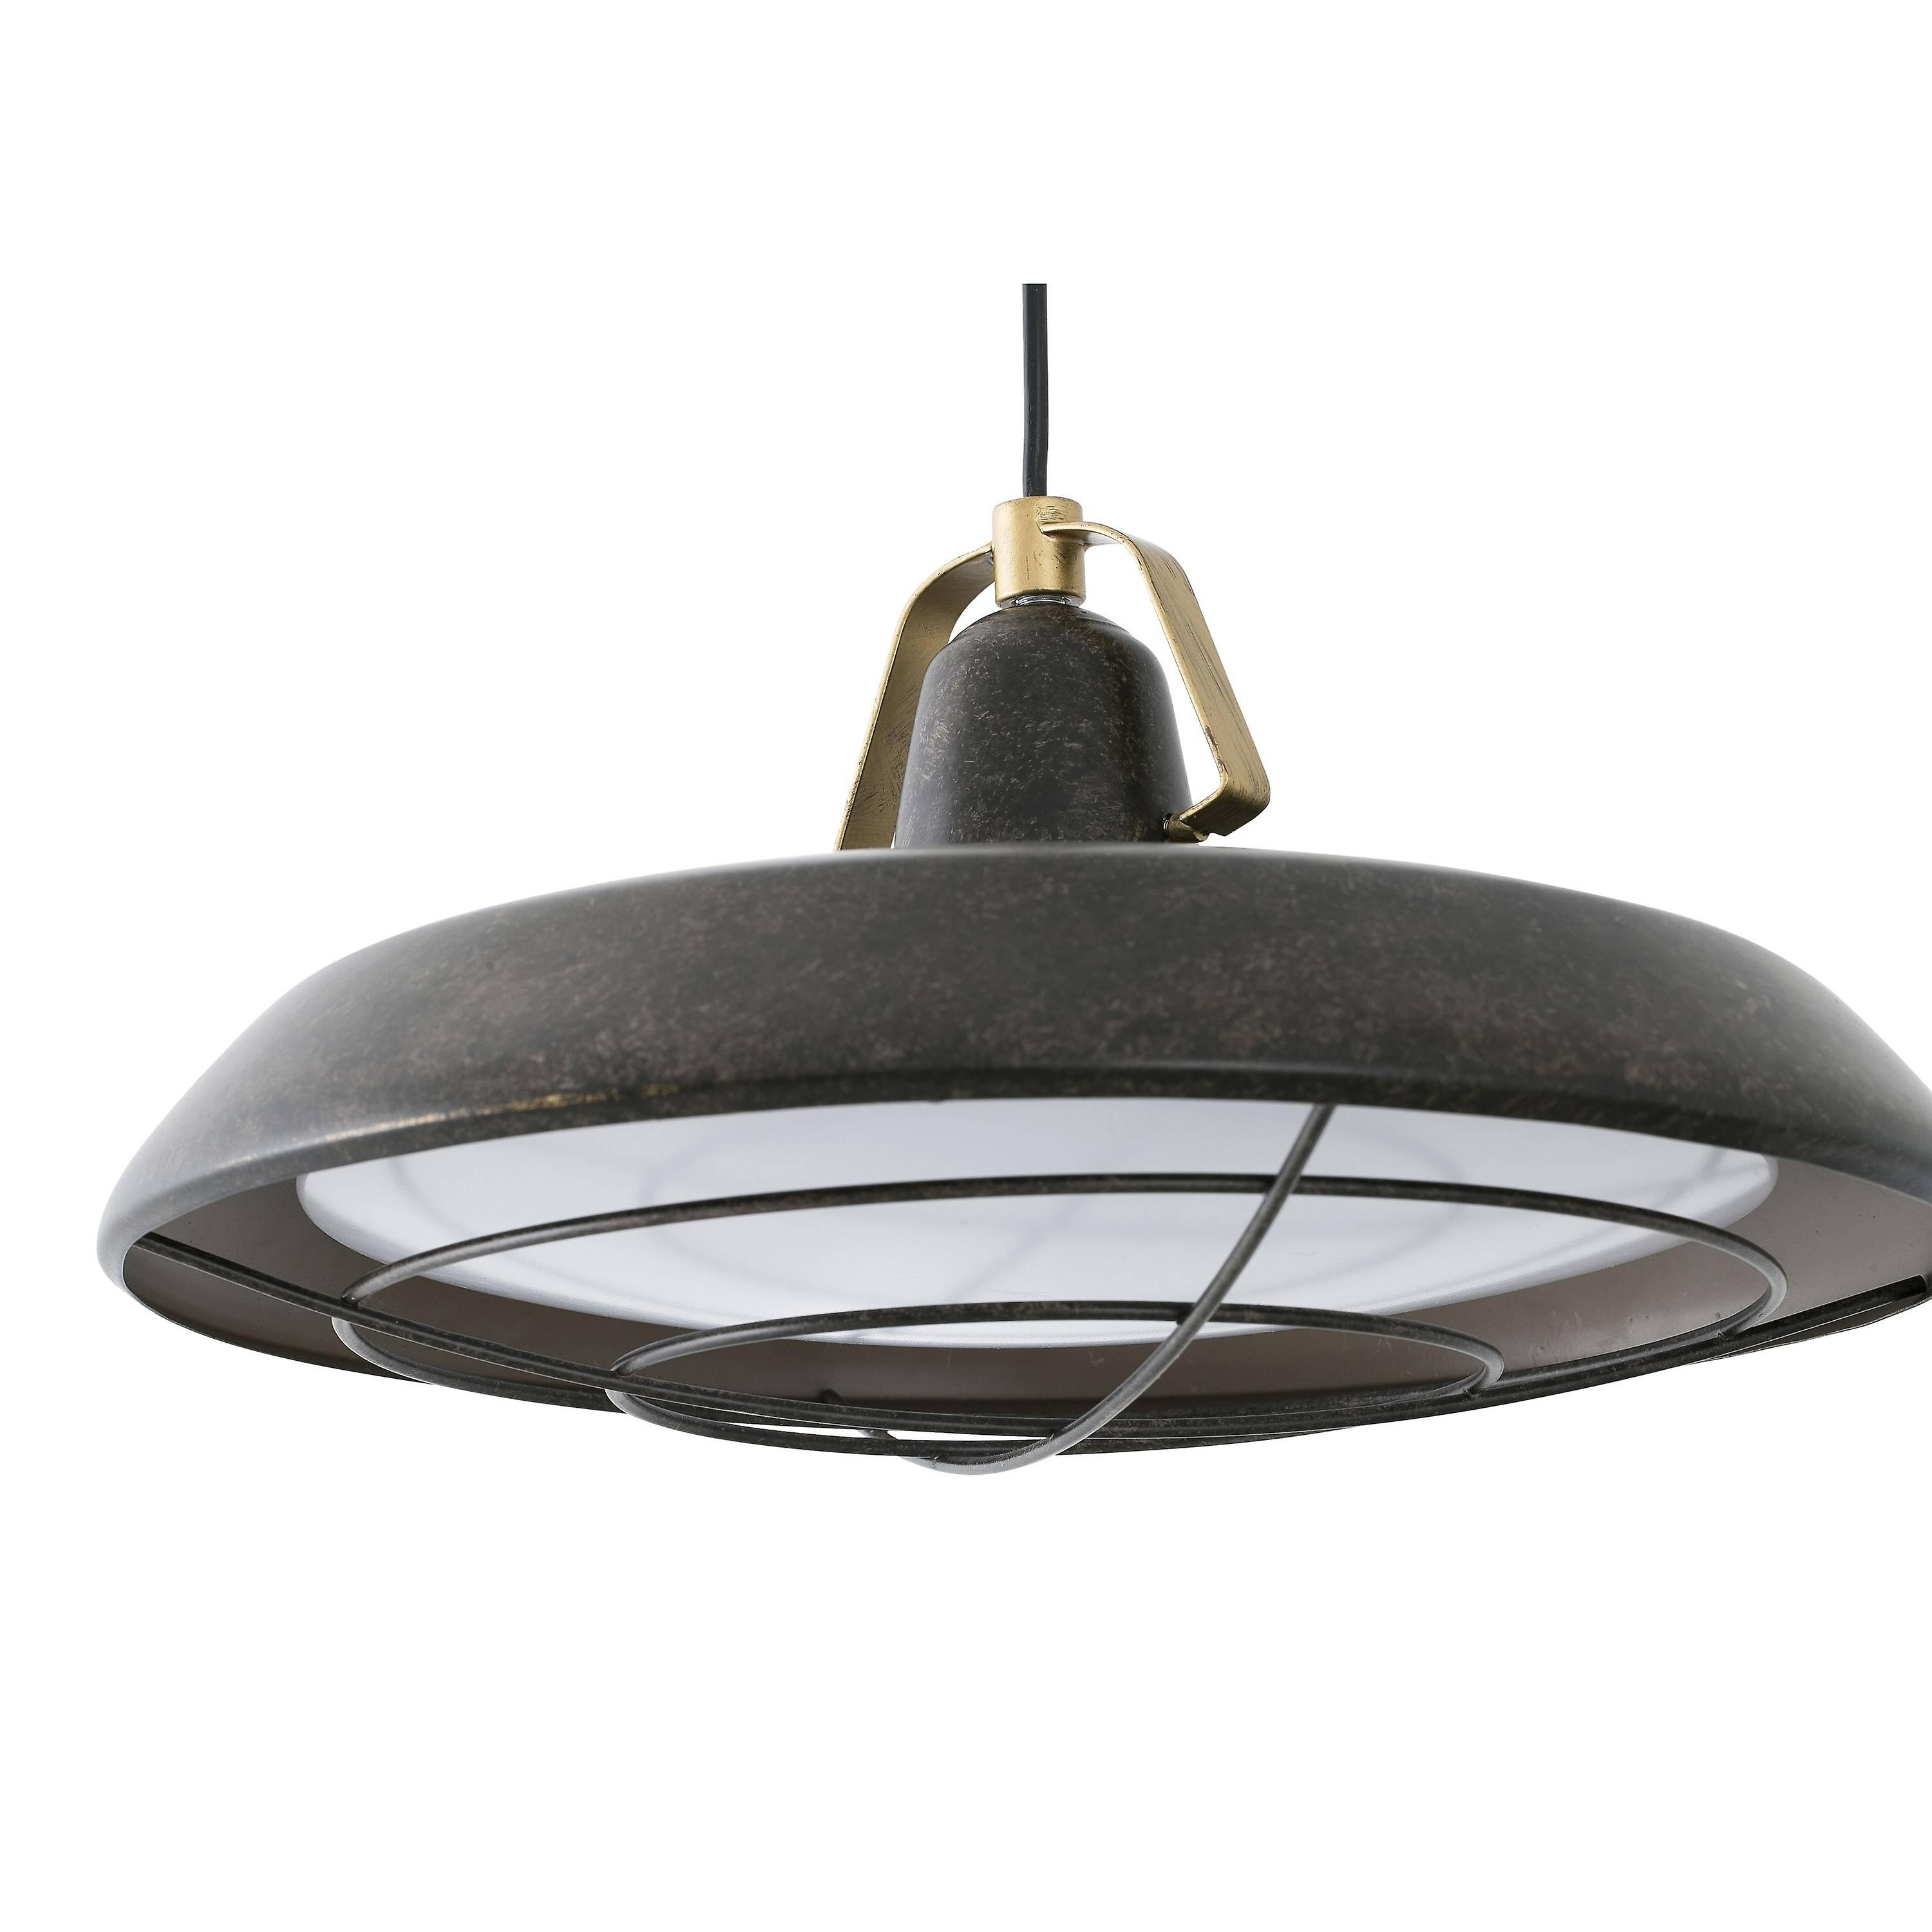 LED 1 Light Outdoor Dome Ceiling Pendant Light Old Brown IP44